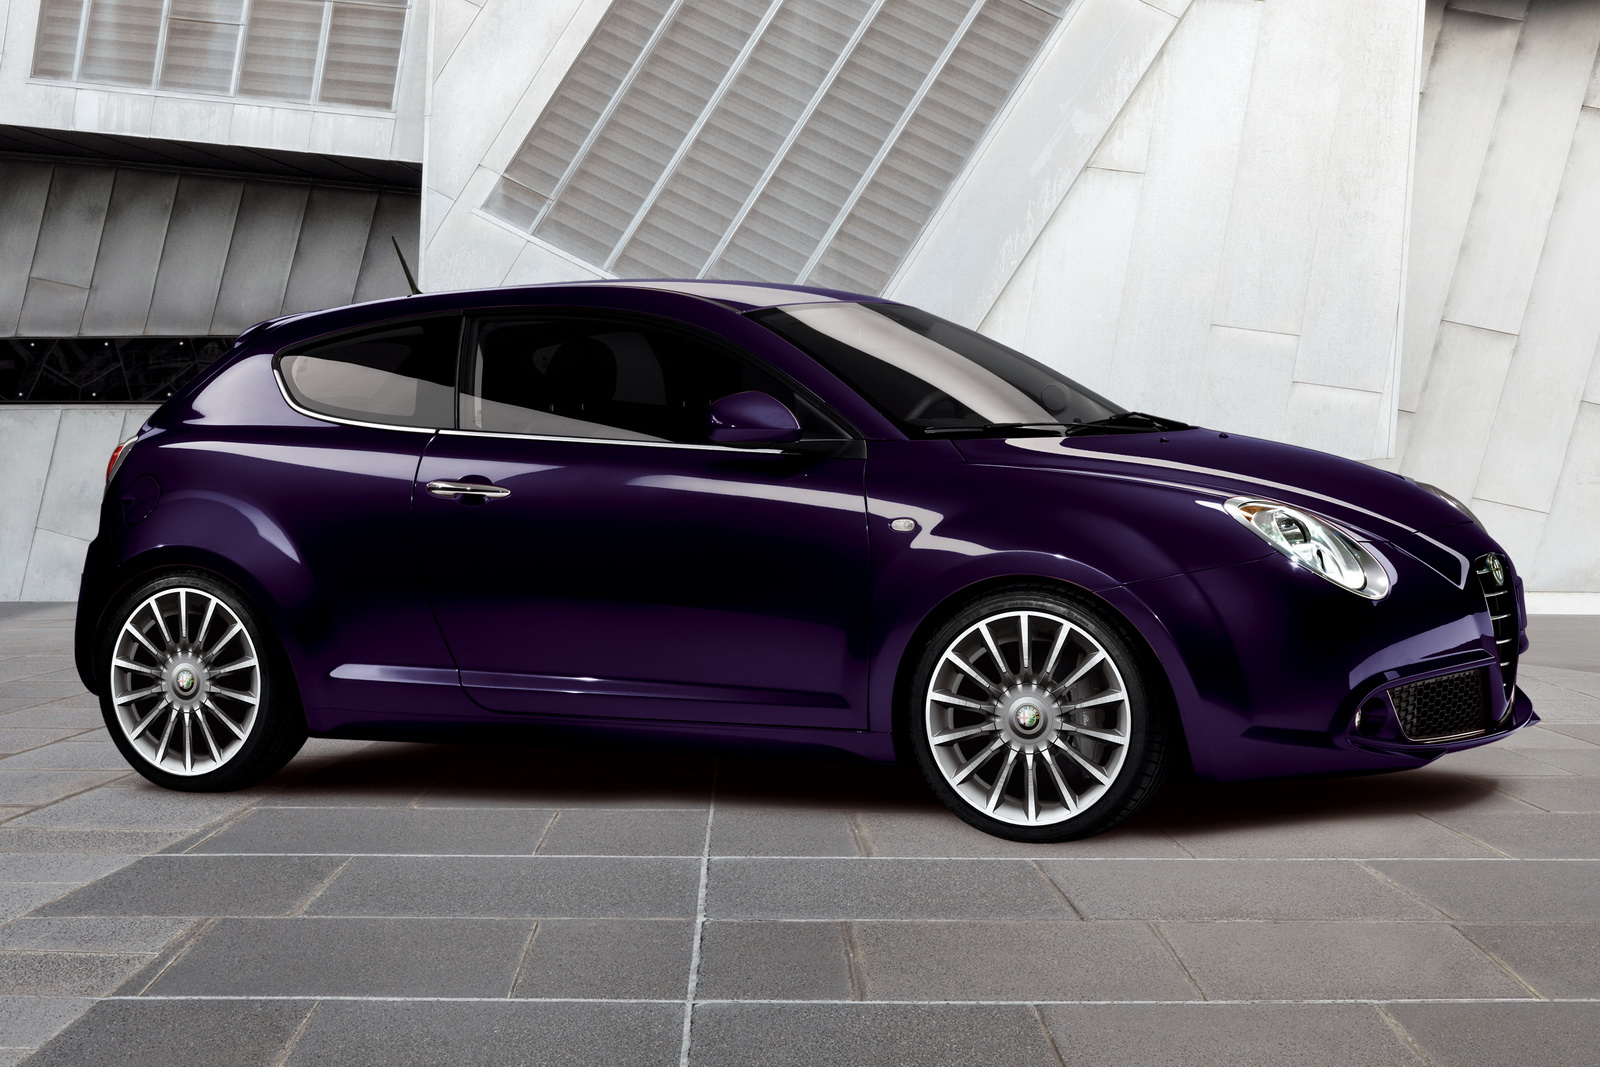 ALFA ROMEO Giulietta and MiTO Hatchbacks 2 Giulietta and MiTO Hatchbacks   More Energy Efficient and Dynamic in Design